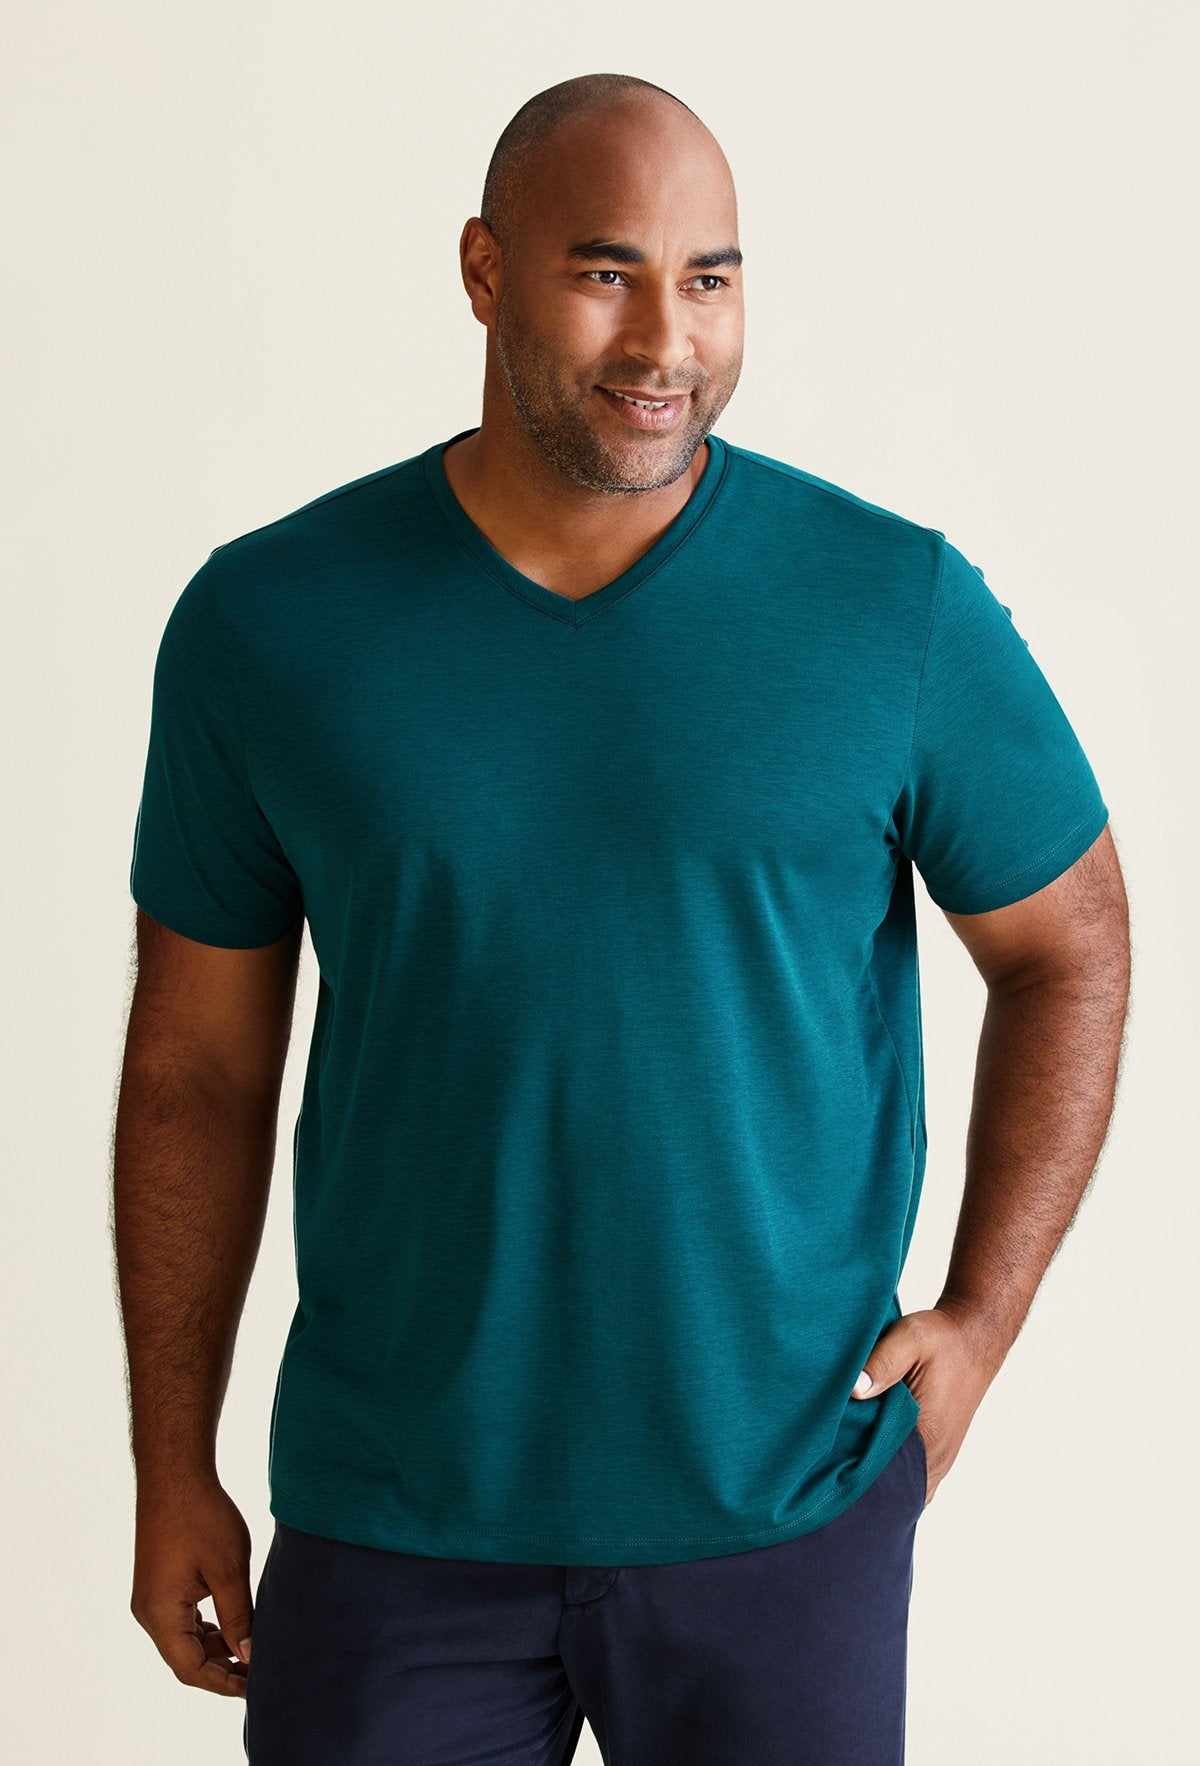 Men's Emerald Green Blue Pima Cotton V-Neck T-Shirt - Peruvian Cotton Blend